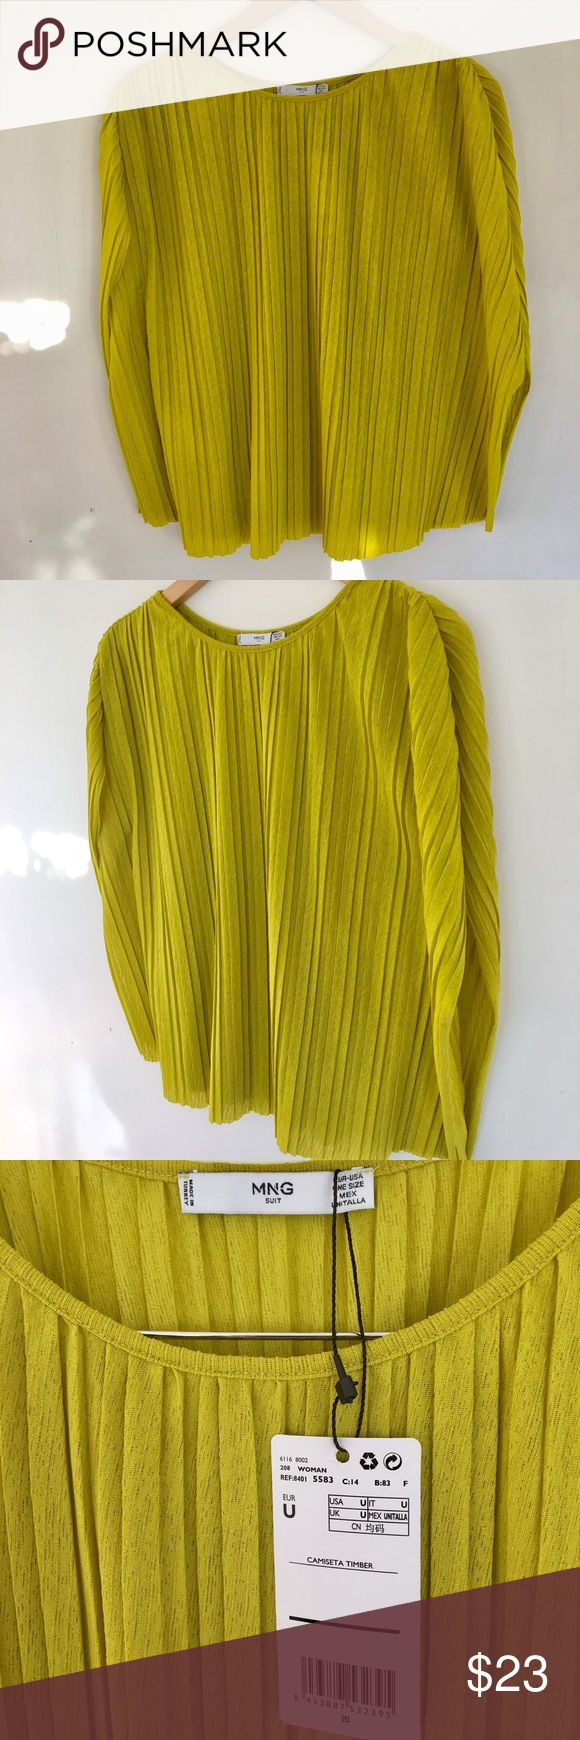 """Mango pleated top Gorgeous chartreuse color top from Mango (sold out). 95% poly 5% elastane provides stretch. Shirt is 'one size' so works on different body types. Side length 11.42"""" back length 21.65"""" Mango Tops"""